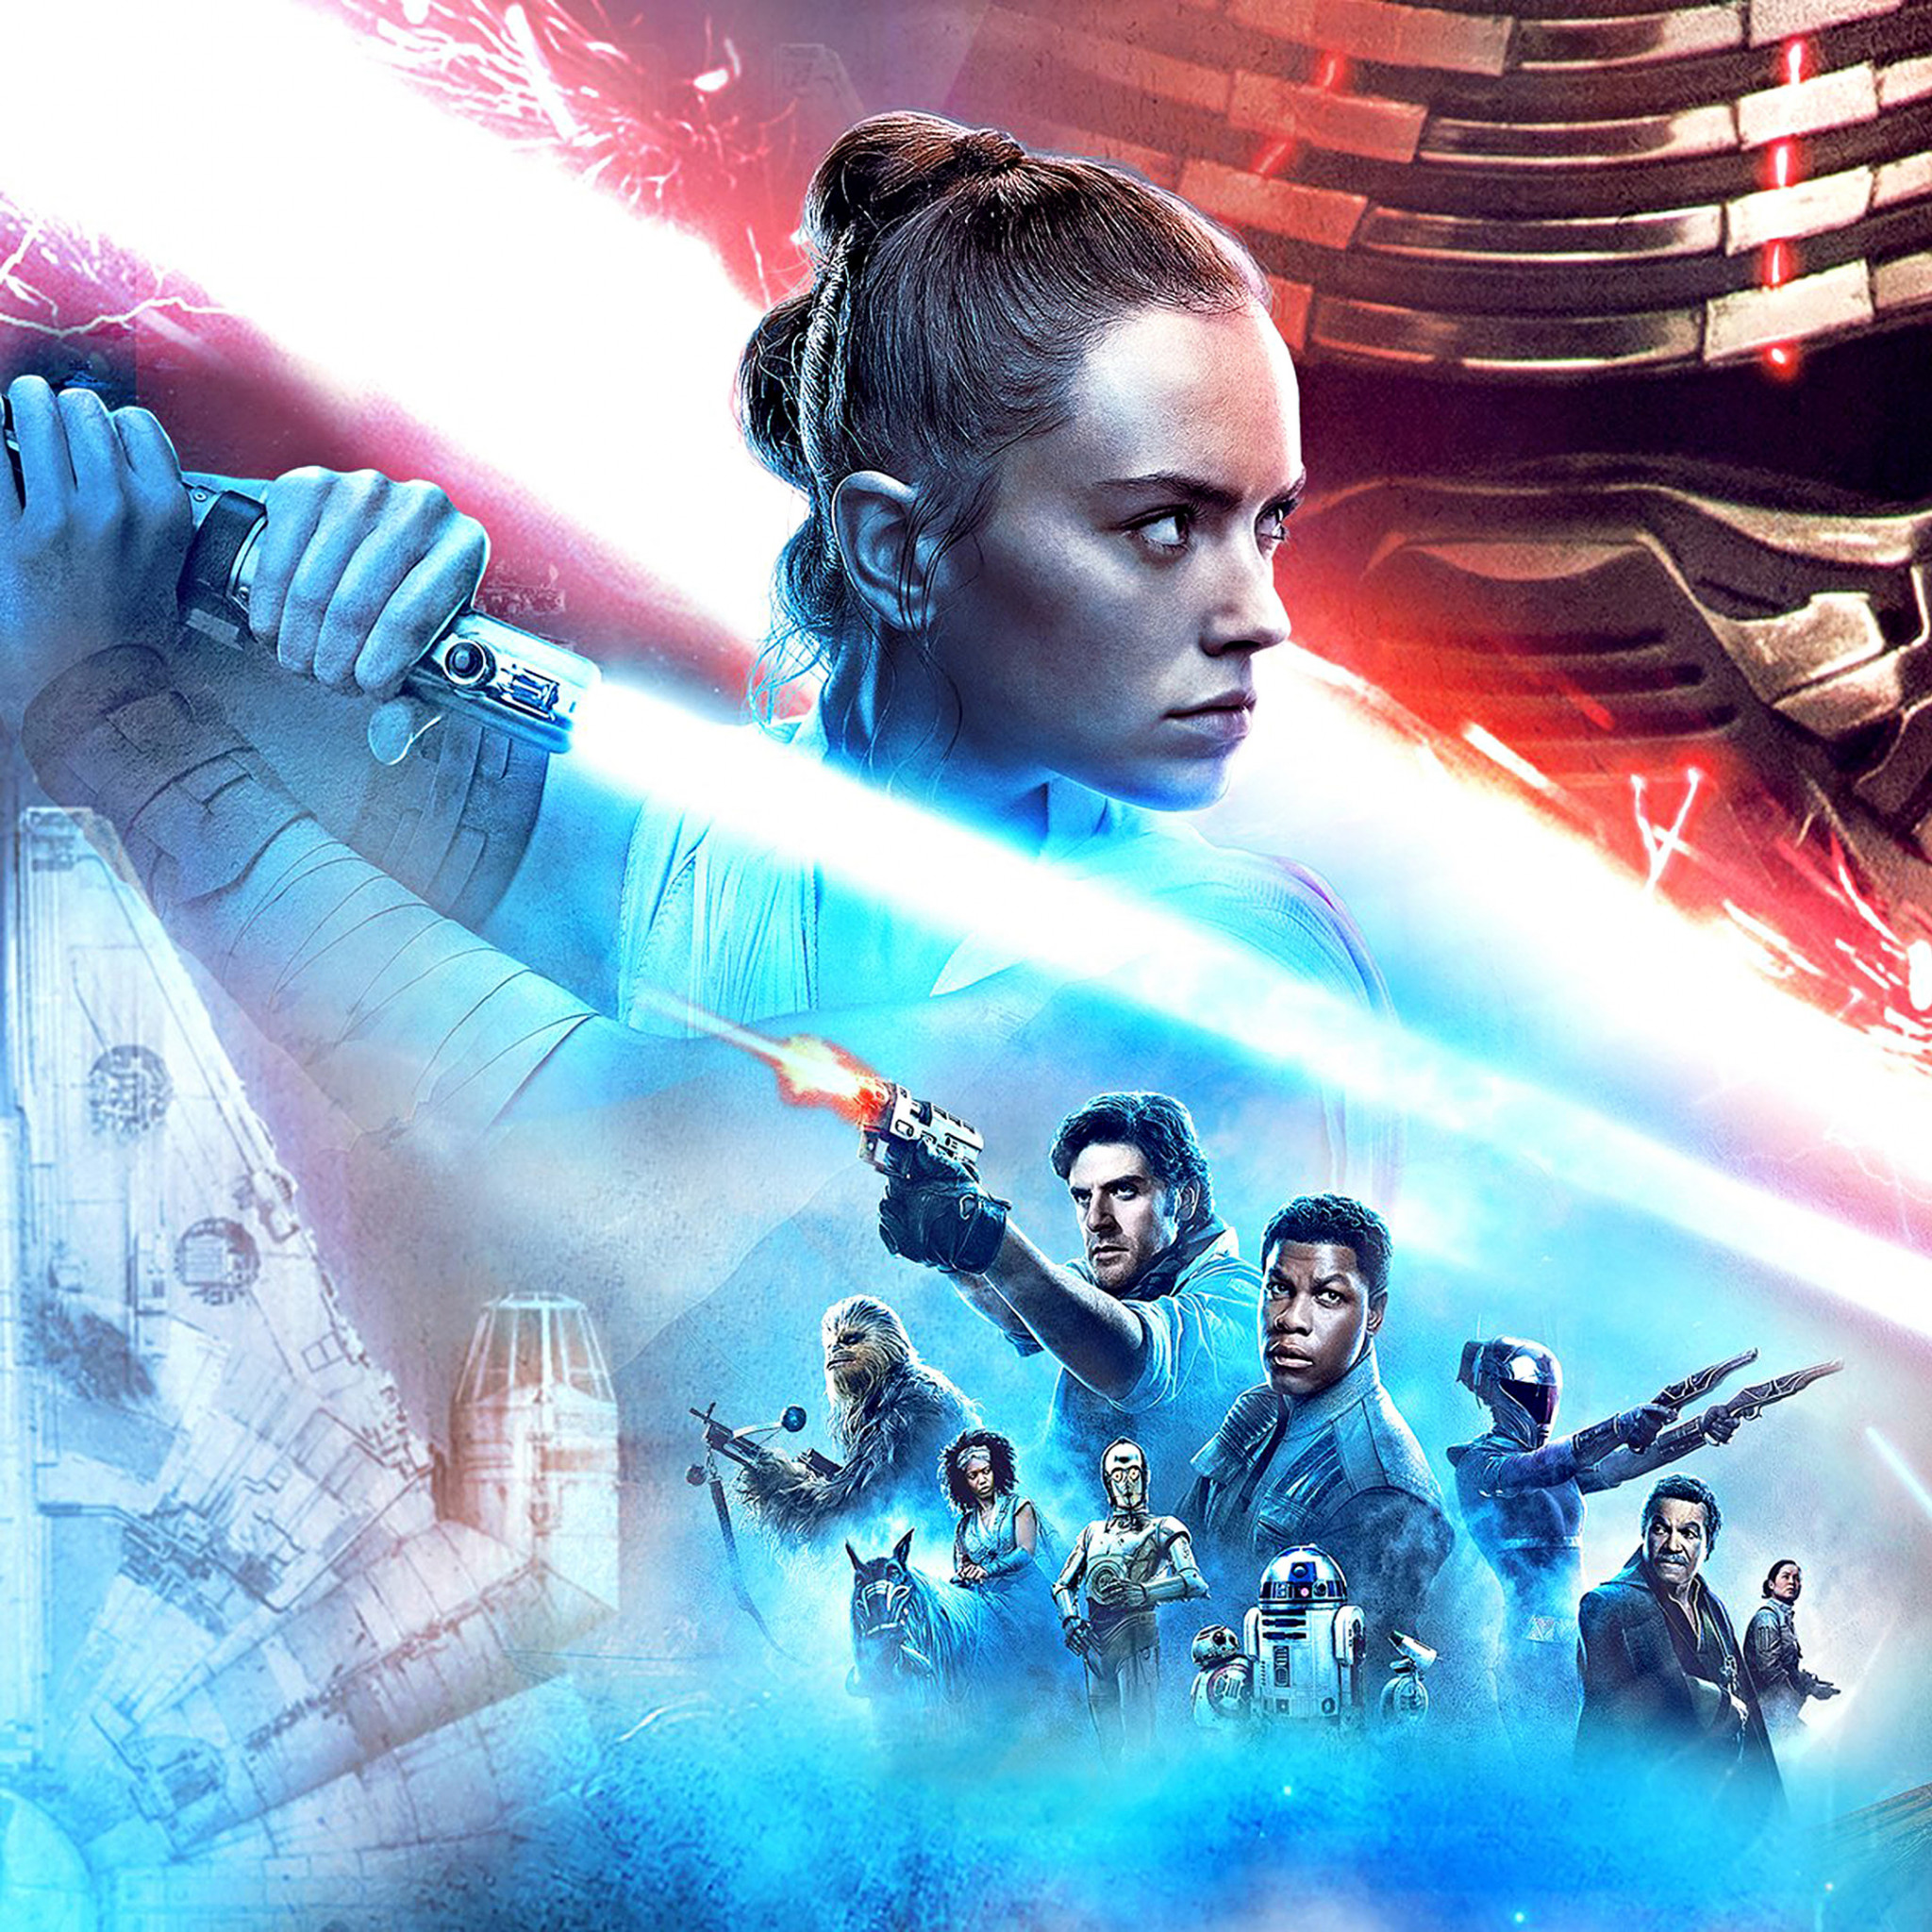 Download Wallpaper Episode Ix Star Wars The Rise Of Skywalker 2048x2048